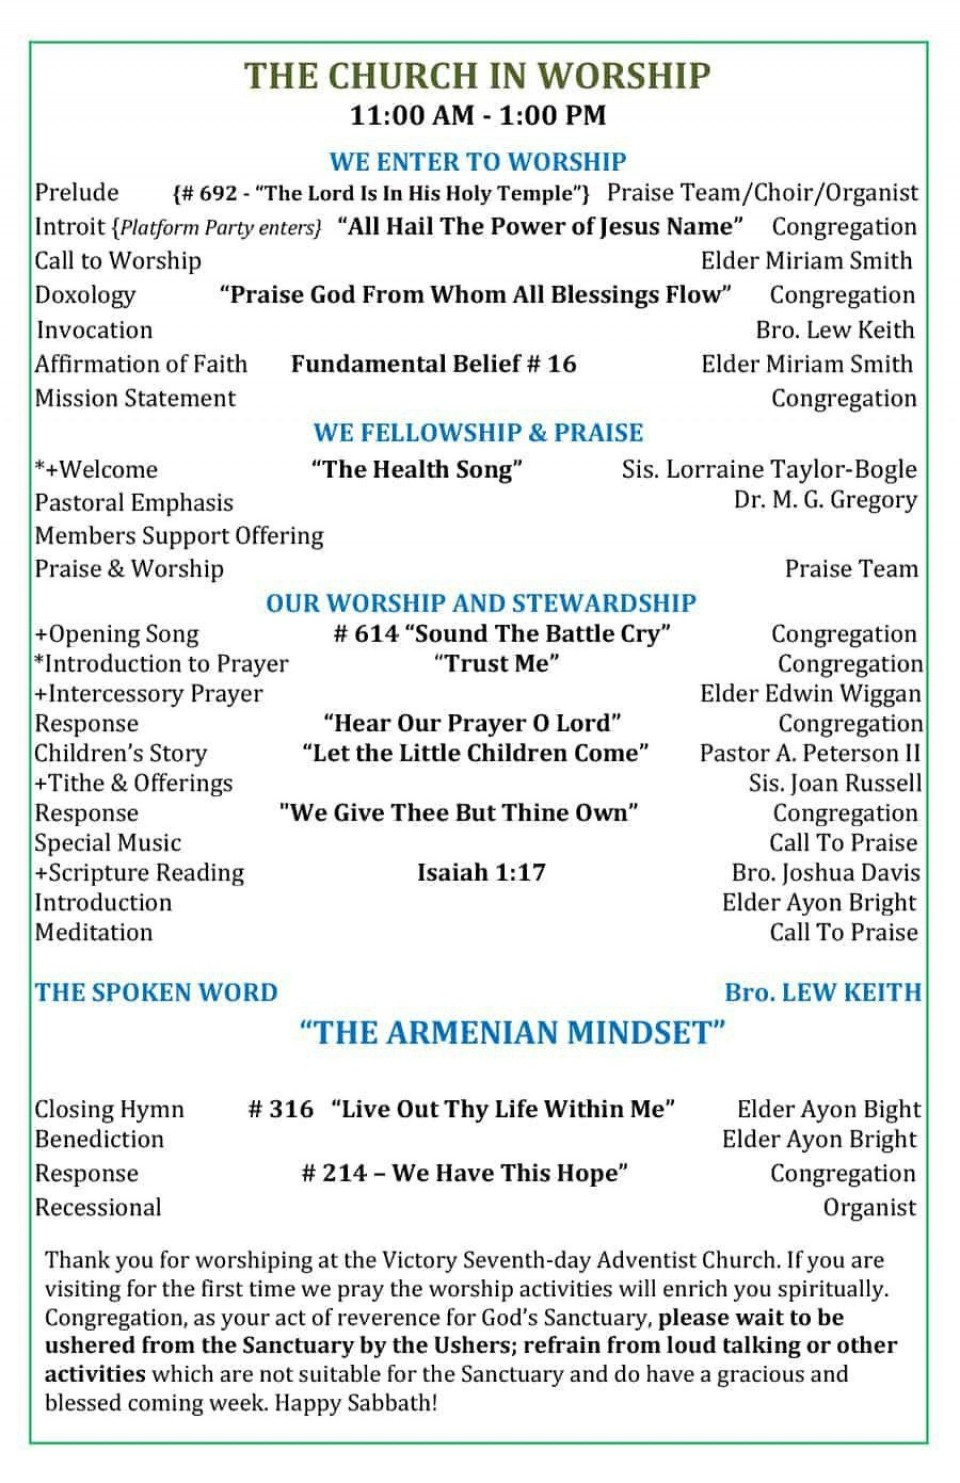 005 Fascinating Free Church Program Template Doc High Resolution 960